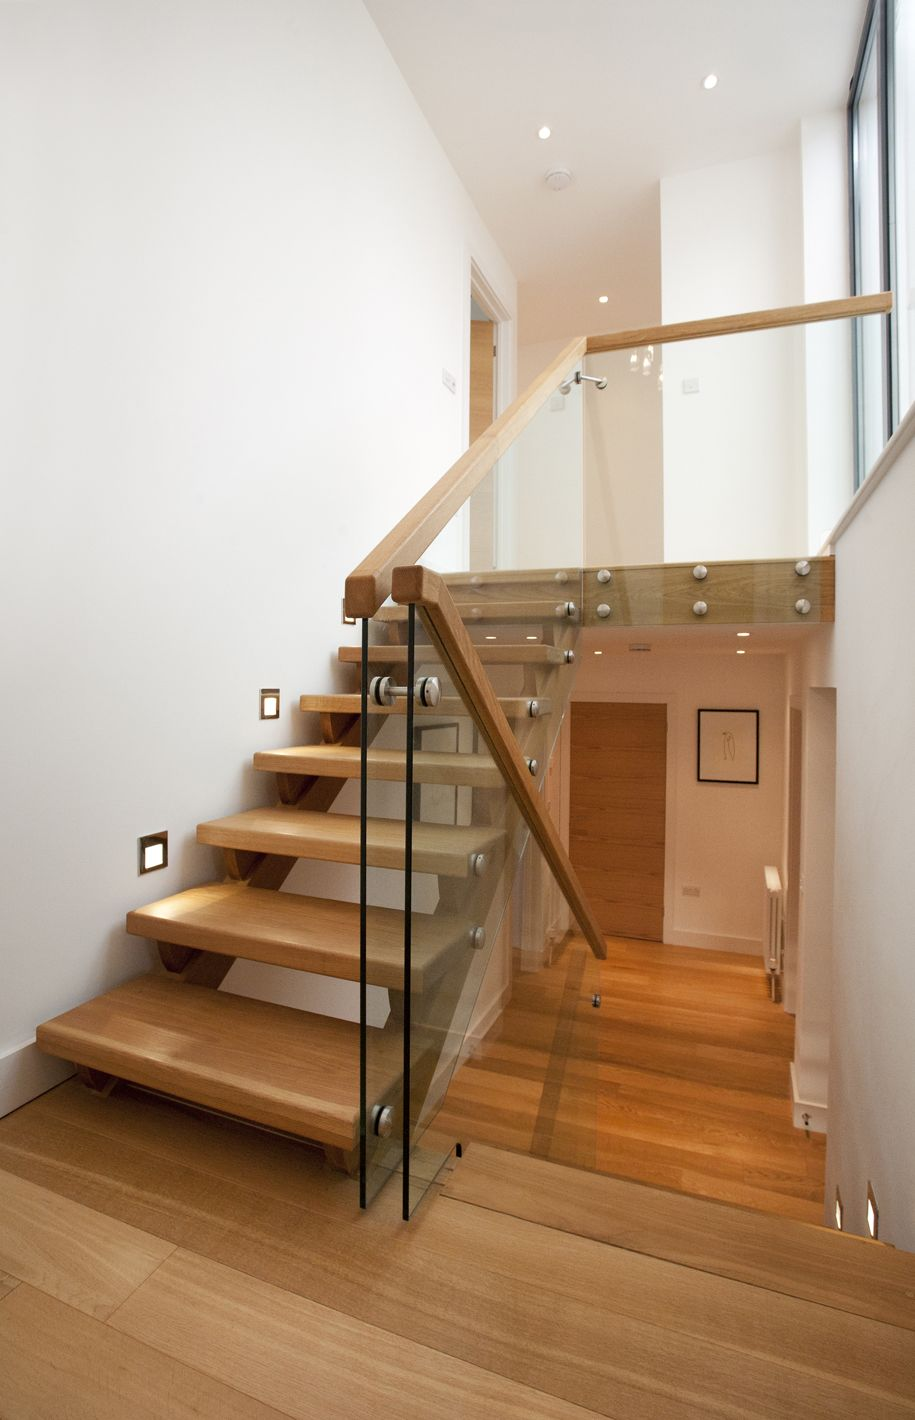 Trevanion home remodel, Cornwall. Split level staircase, glazed balustrade,  glass and wood